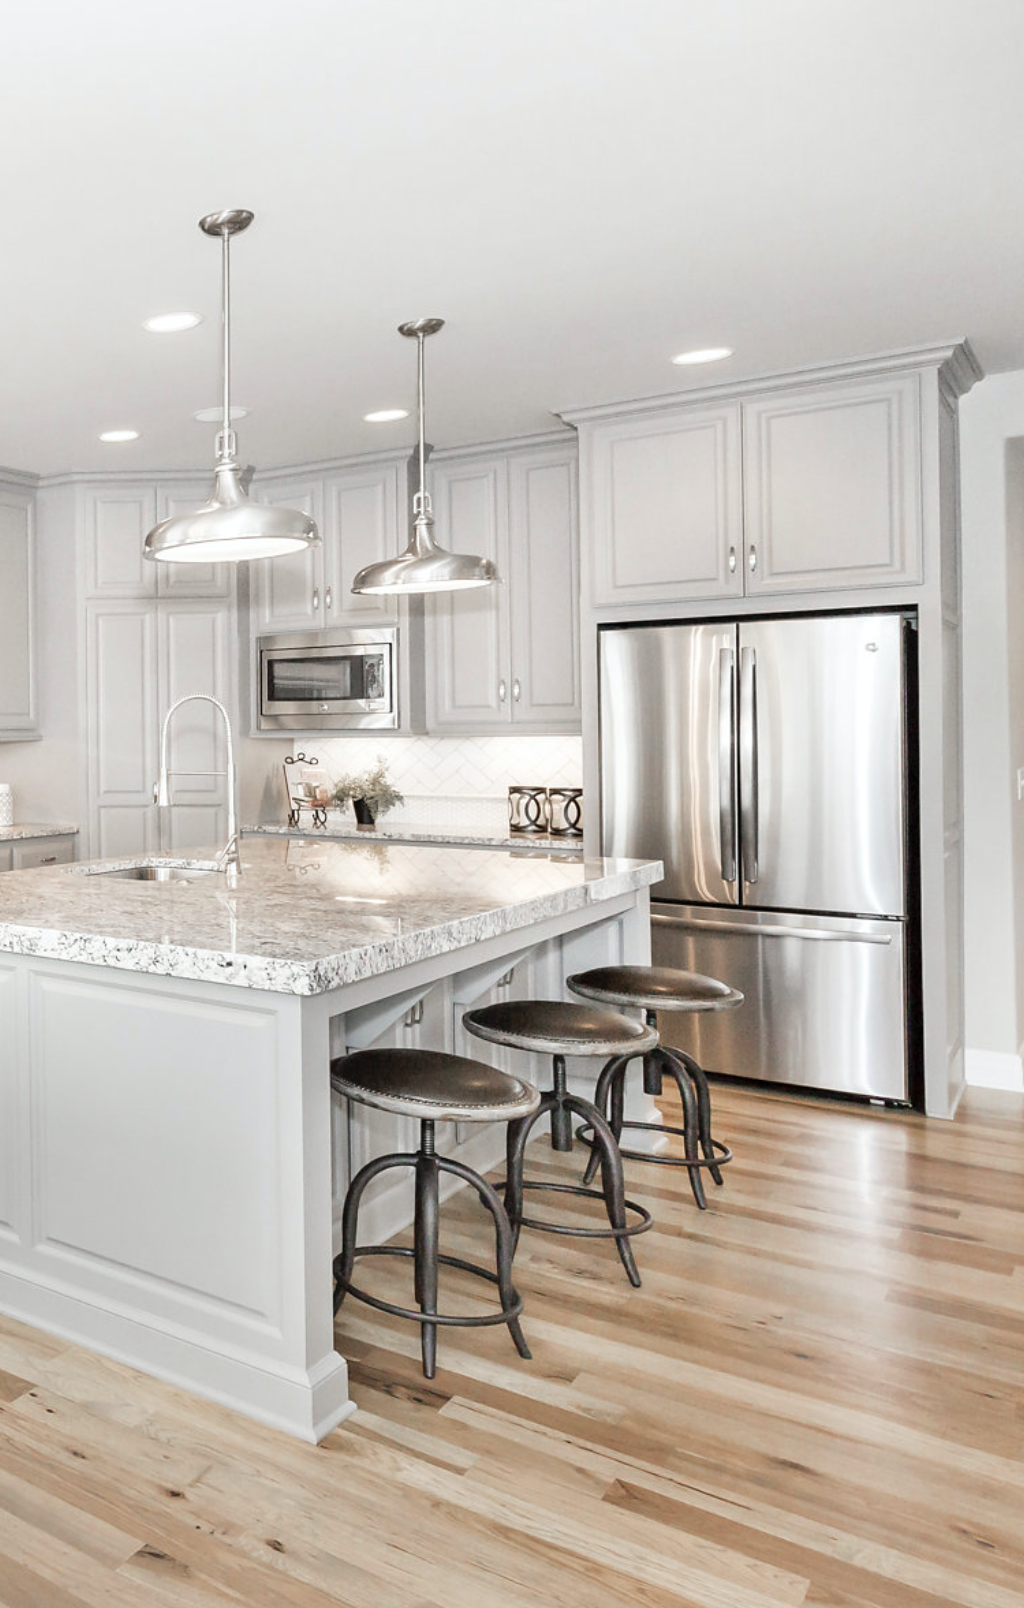 The Bailey By Roeser Homes Is An Exceptional 2 Story Plan That Offers Plenty Of Space F Kitchen Cabinet Color Options Corner Fireplace Kitchen Cabinet Colors